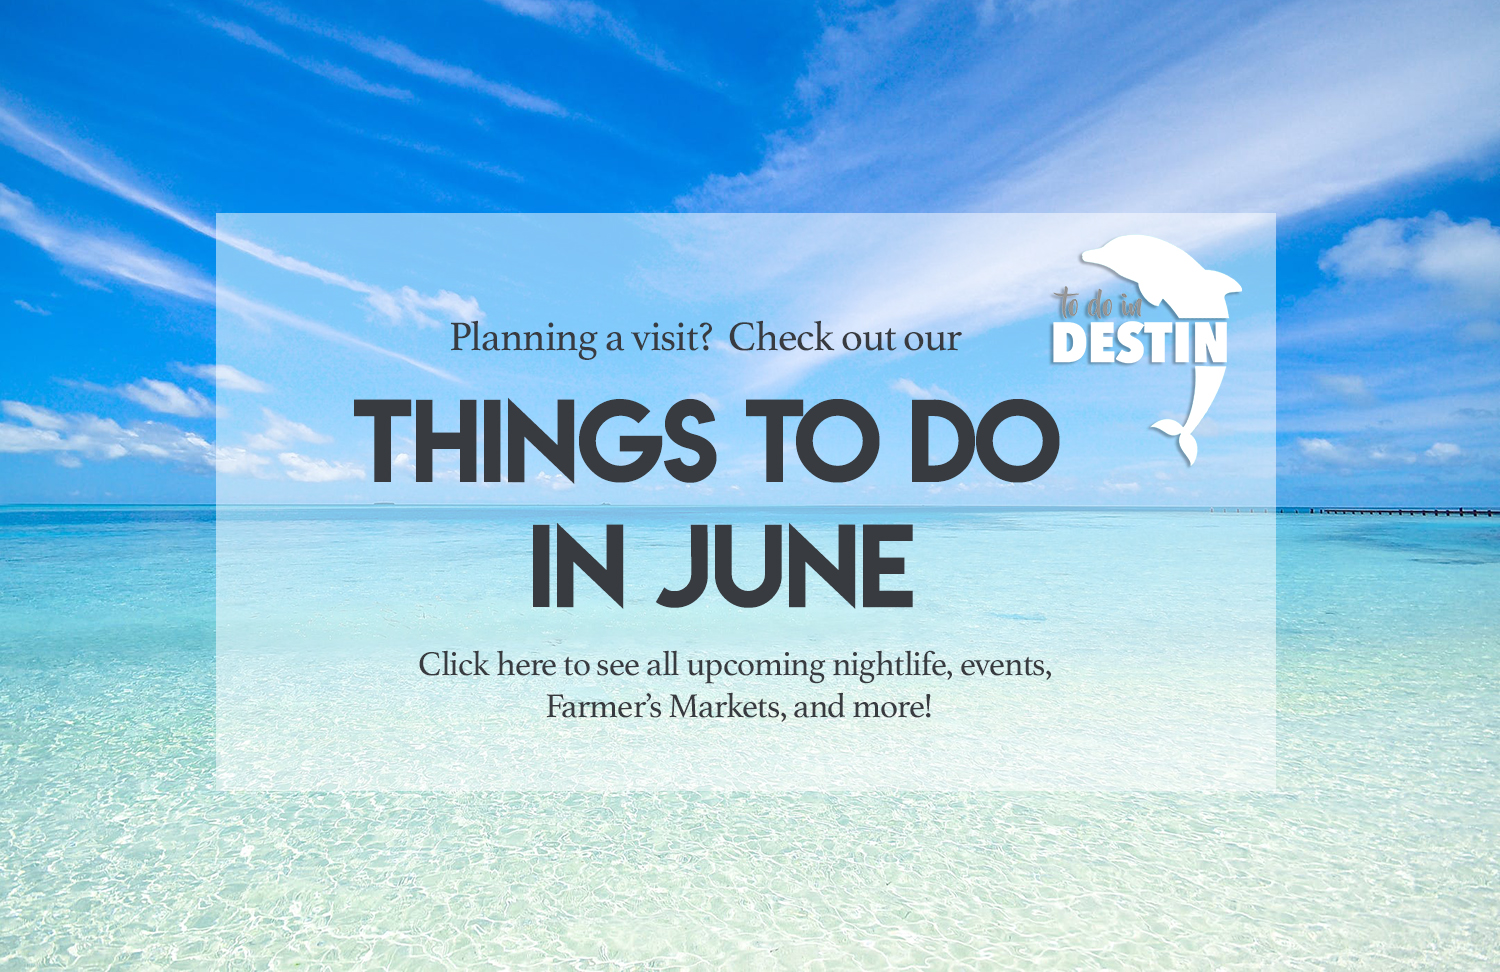 June Events in Destin Florida | Find Things To Do In Destin